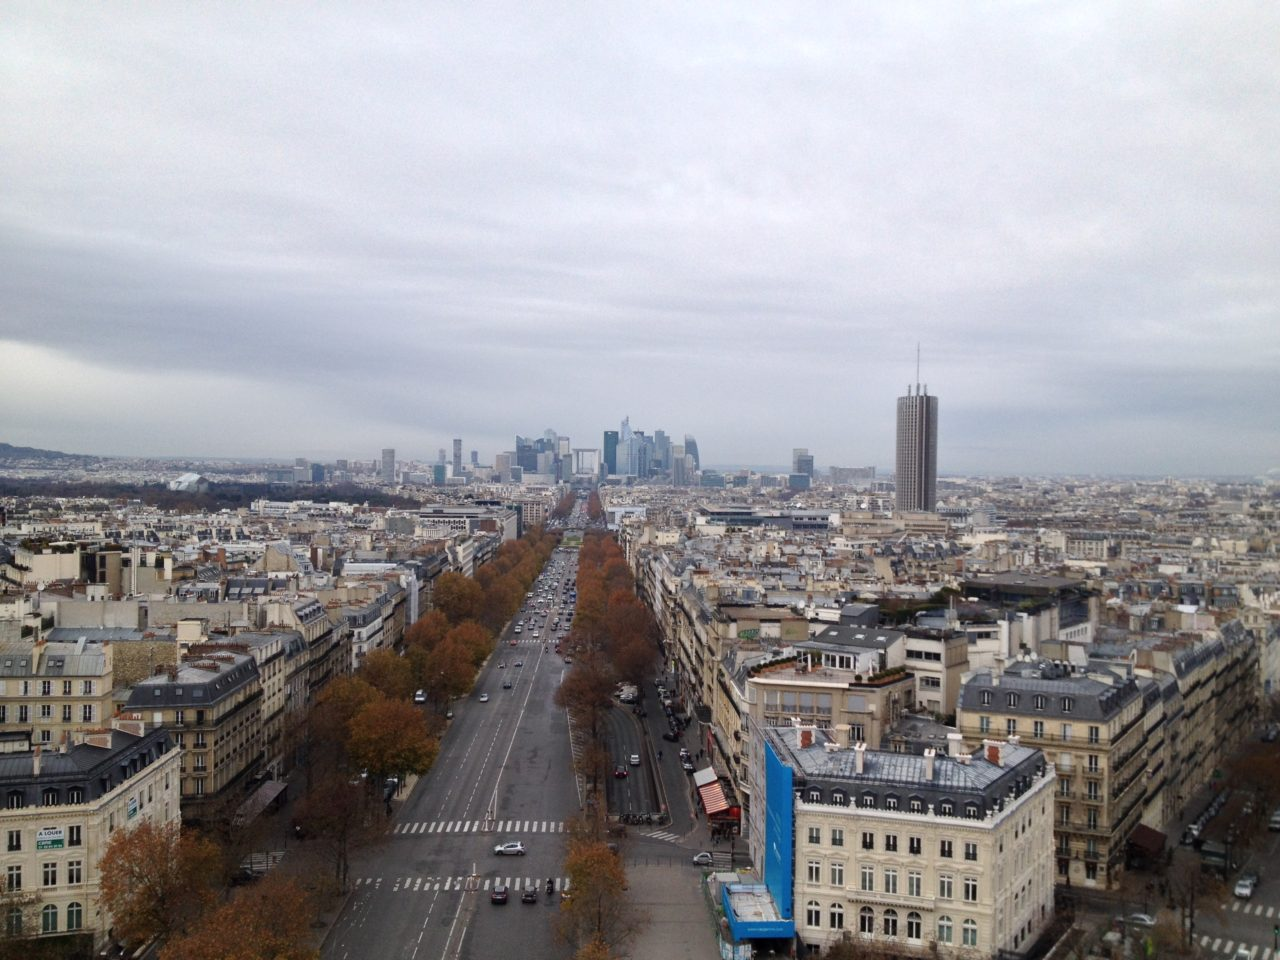 Paris City Skyline With High Rises And Streets